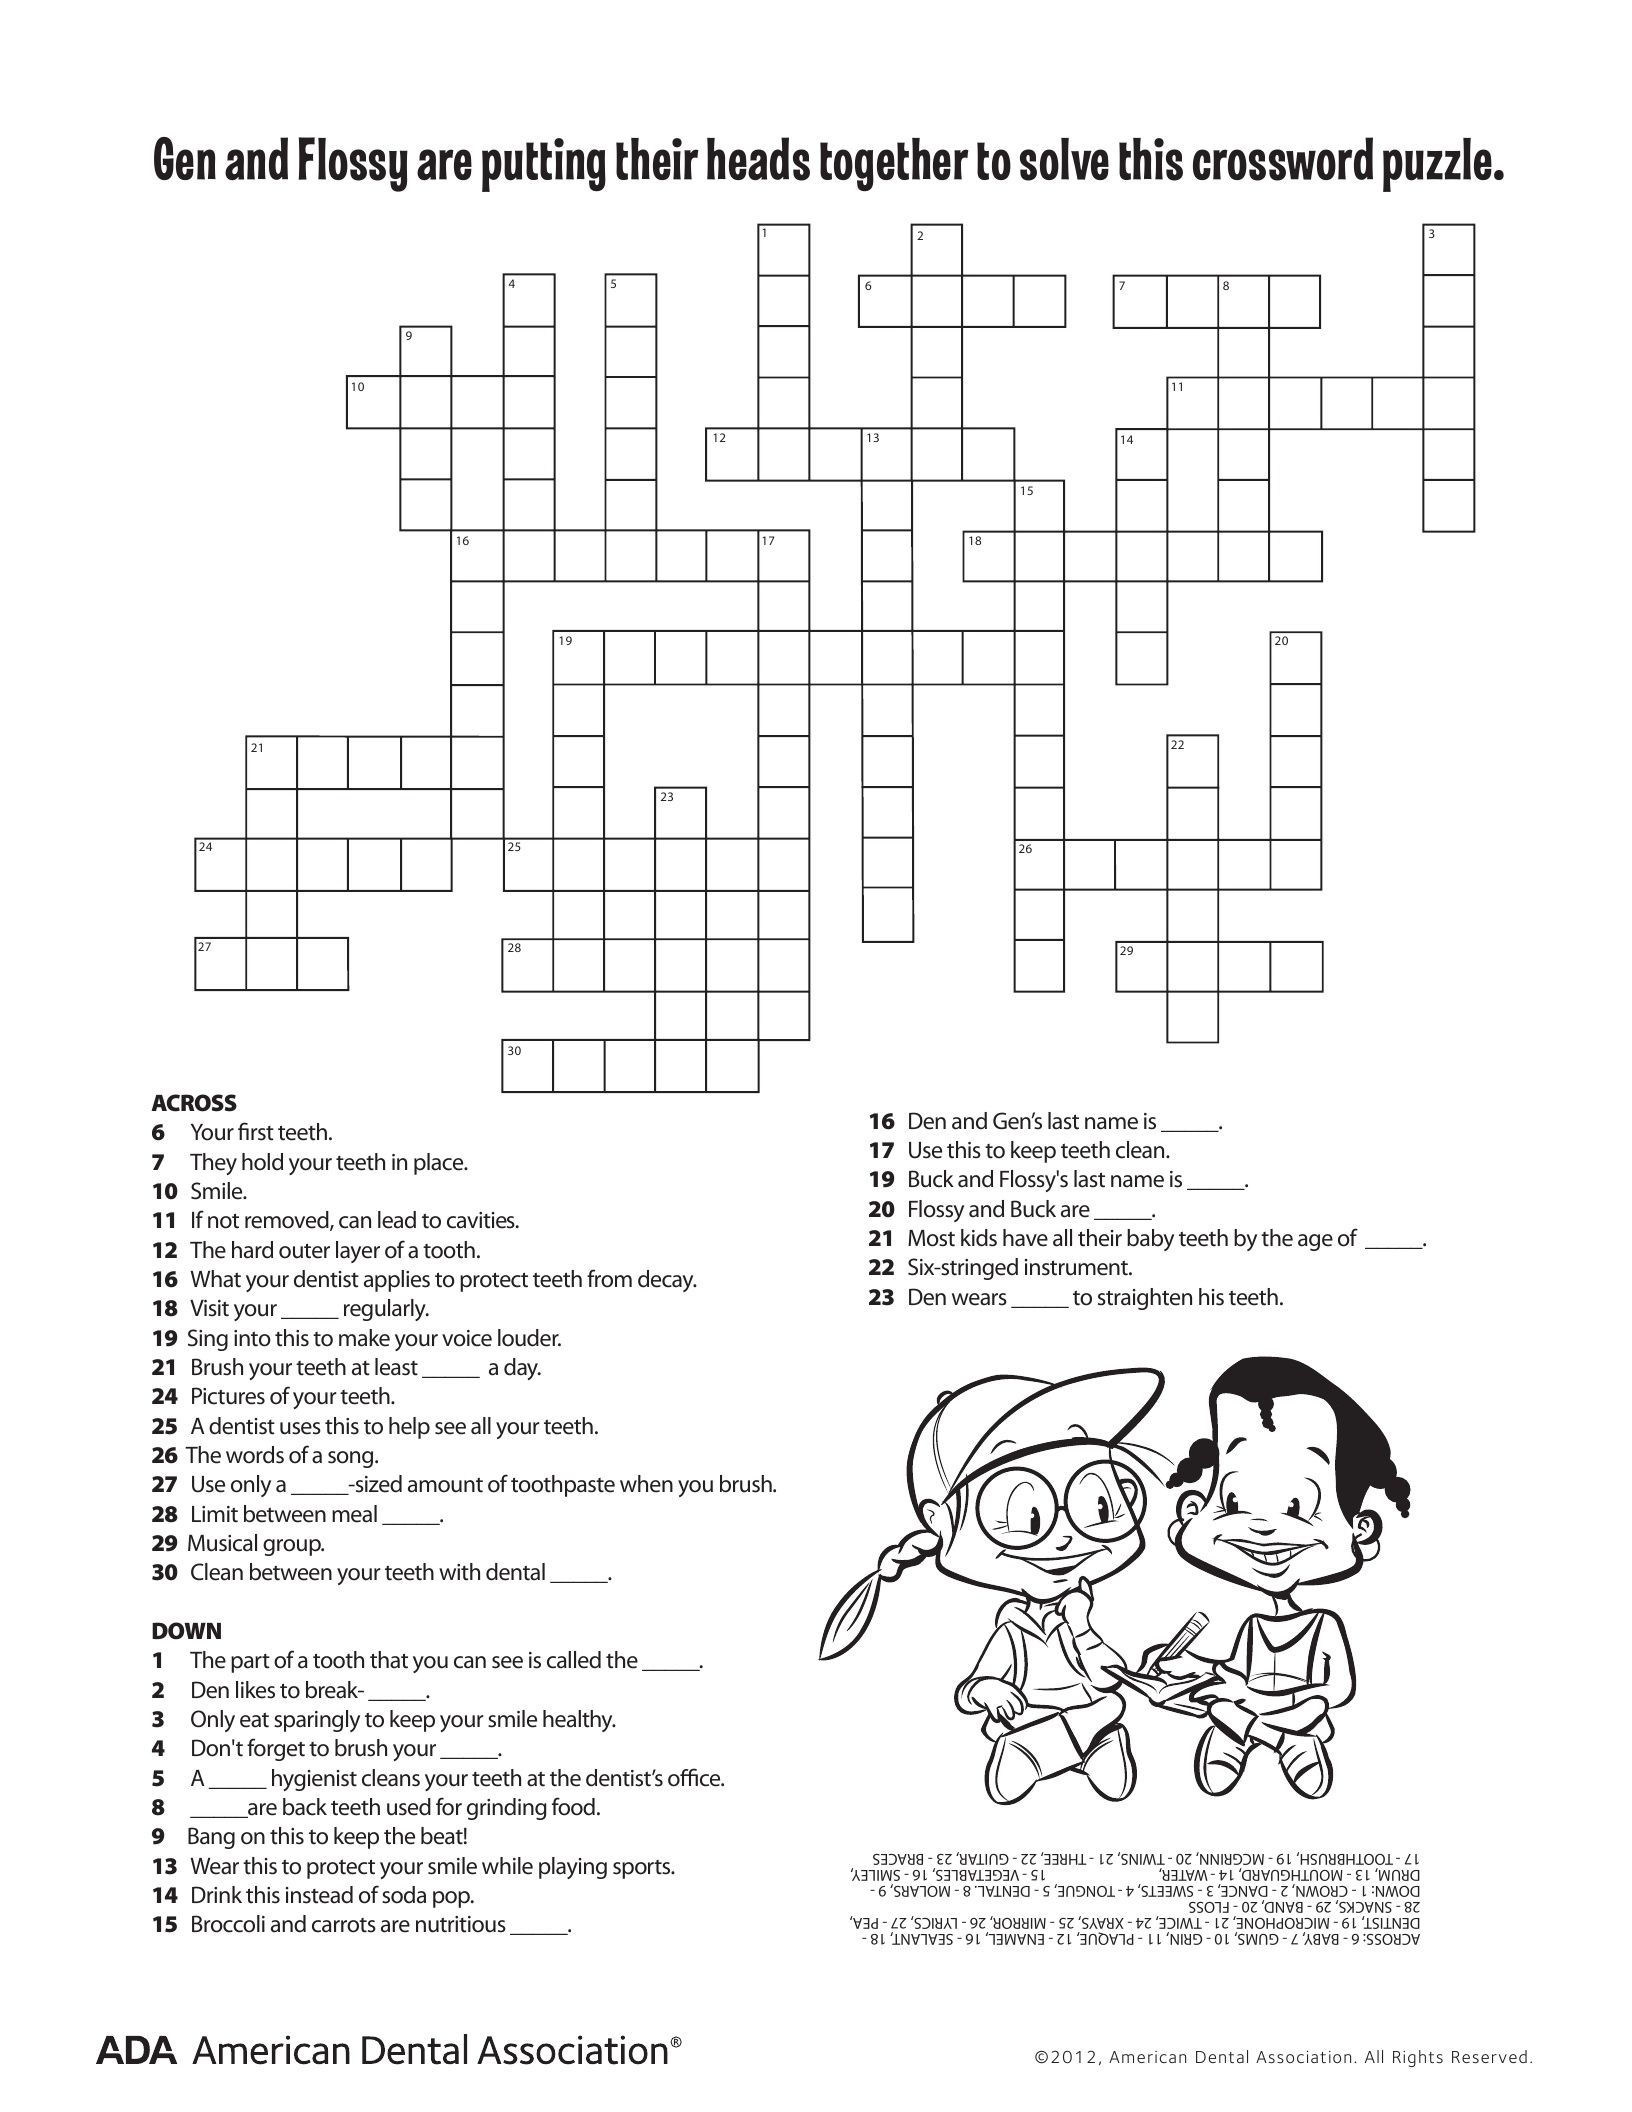 11 Dental Health Activities Puzzle Fun (Printable) | Dental Hygiene - Printable Personal Hygiene Crossword Puzzle